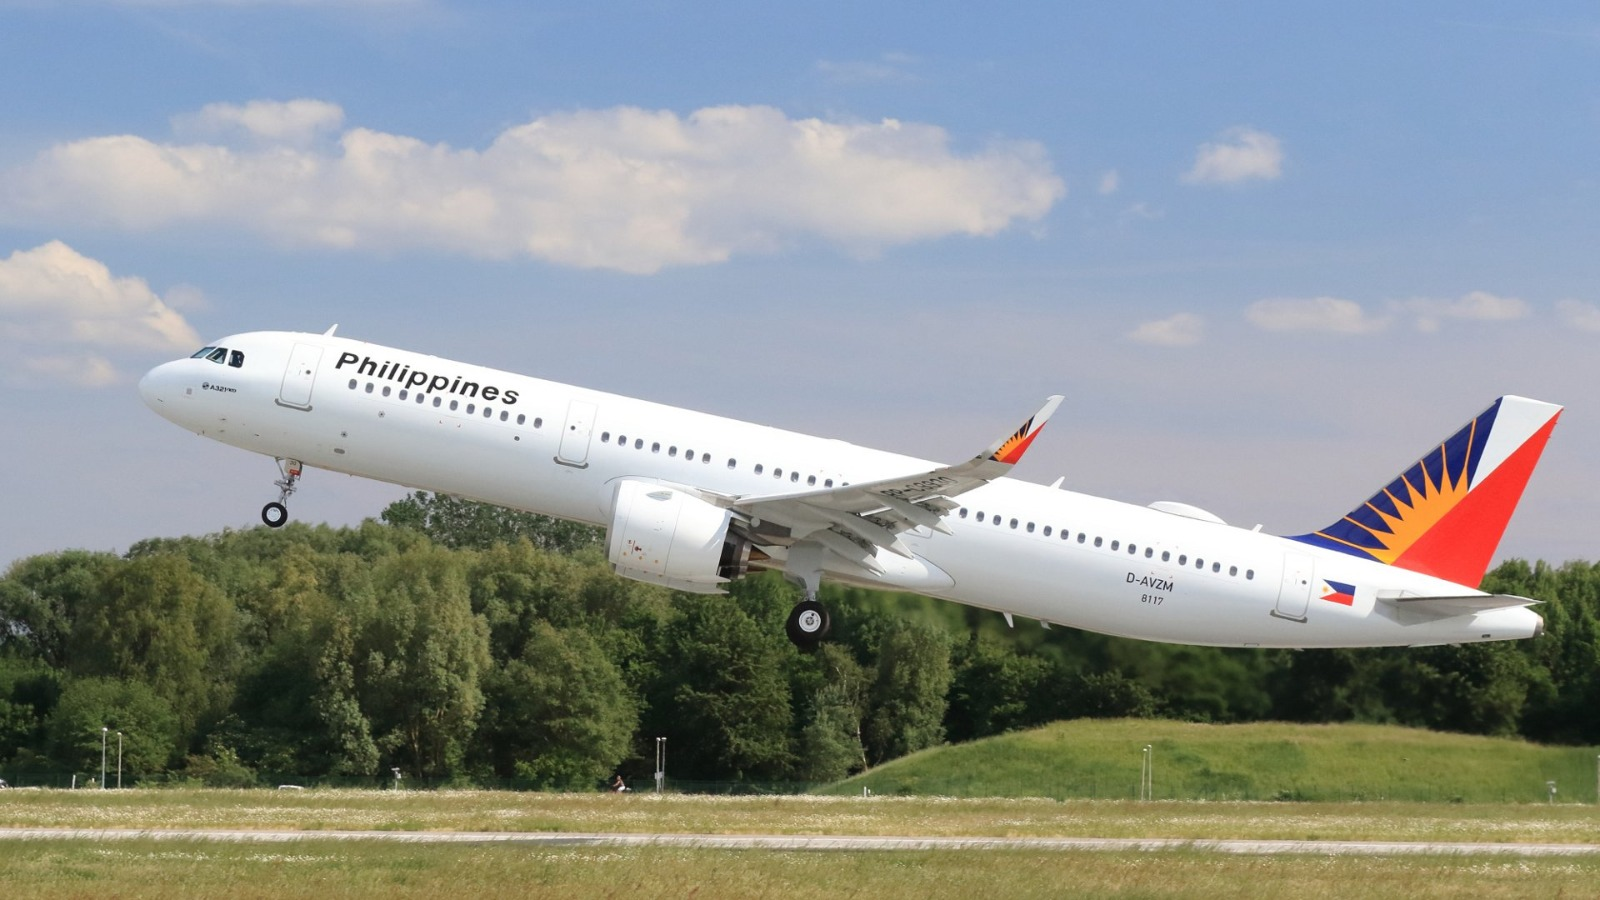 Phillipines Airlines